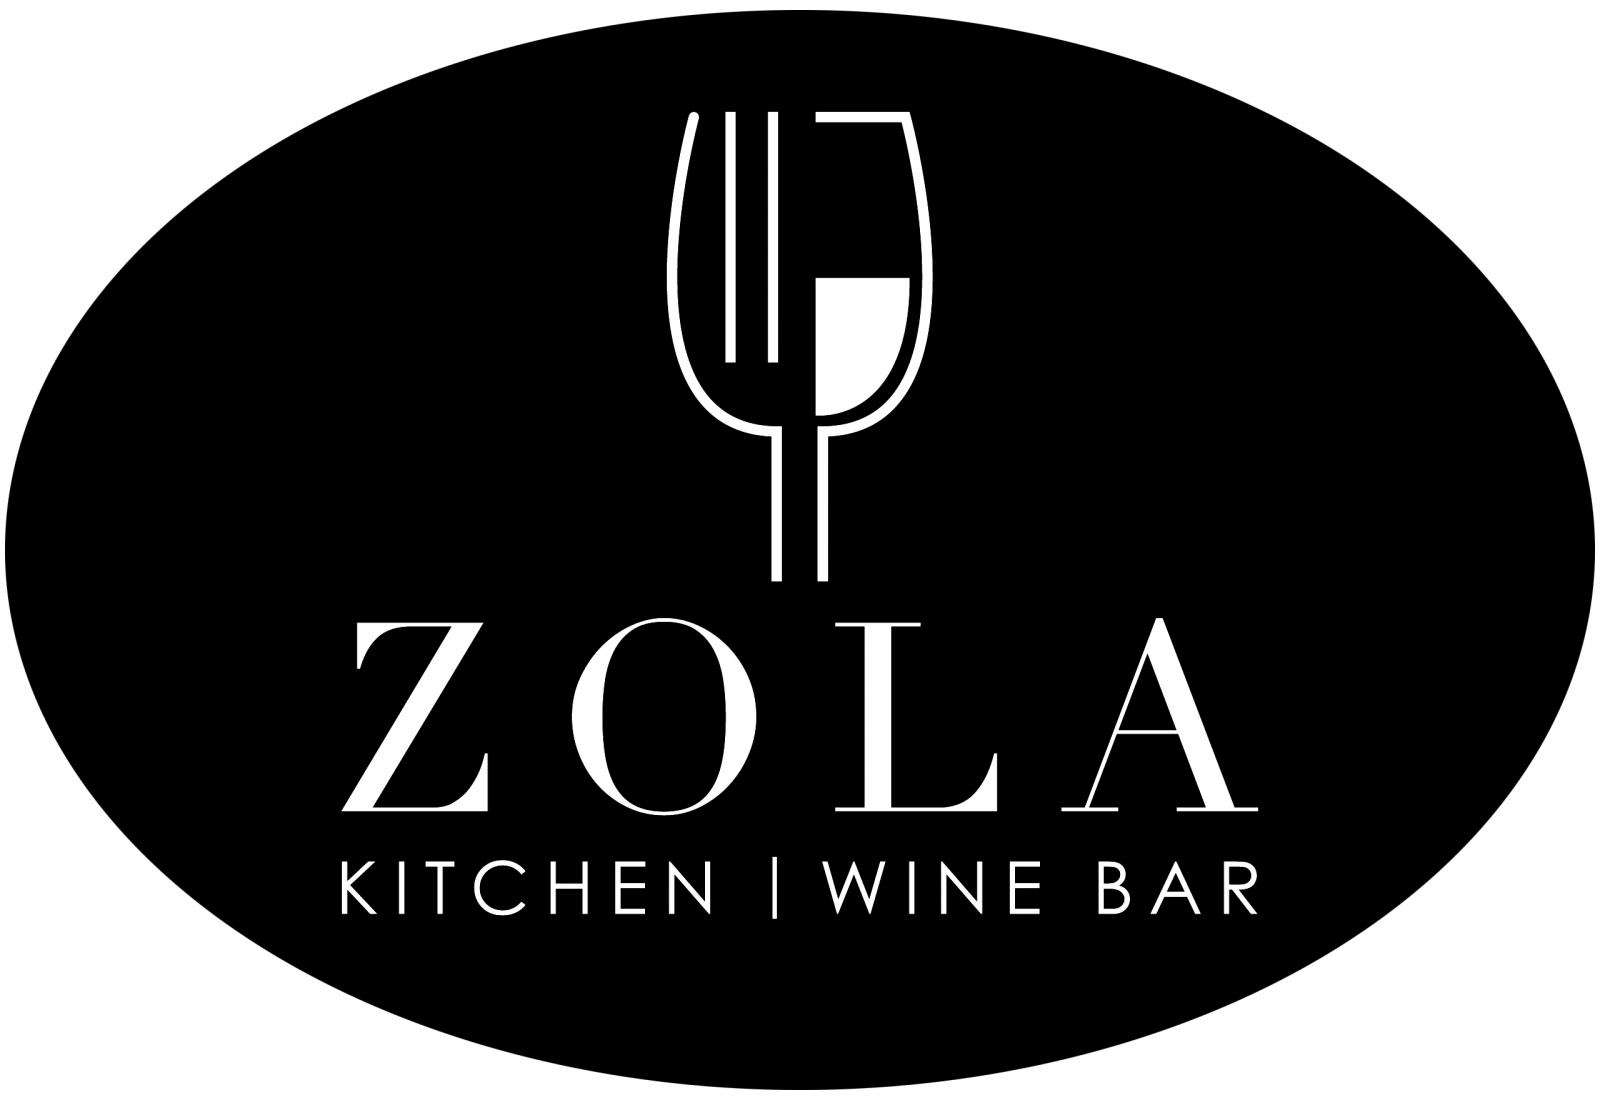 Zola Kitchen & Wine Bar